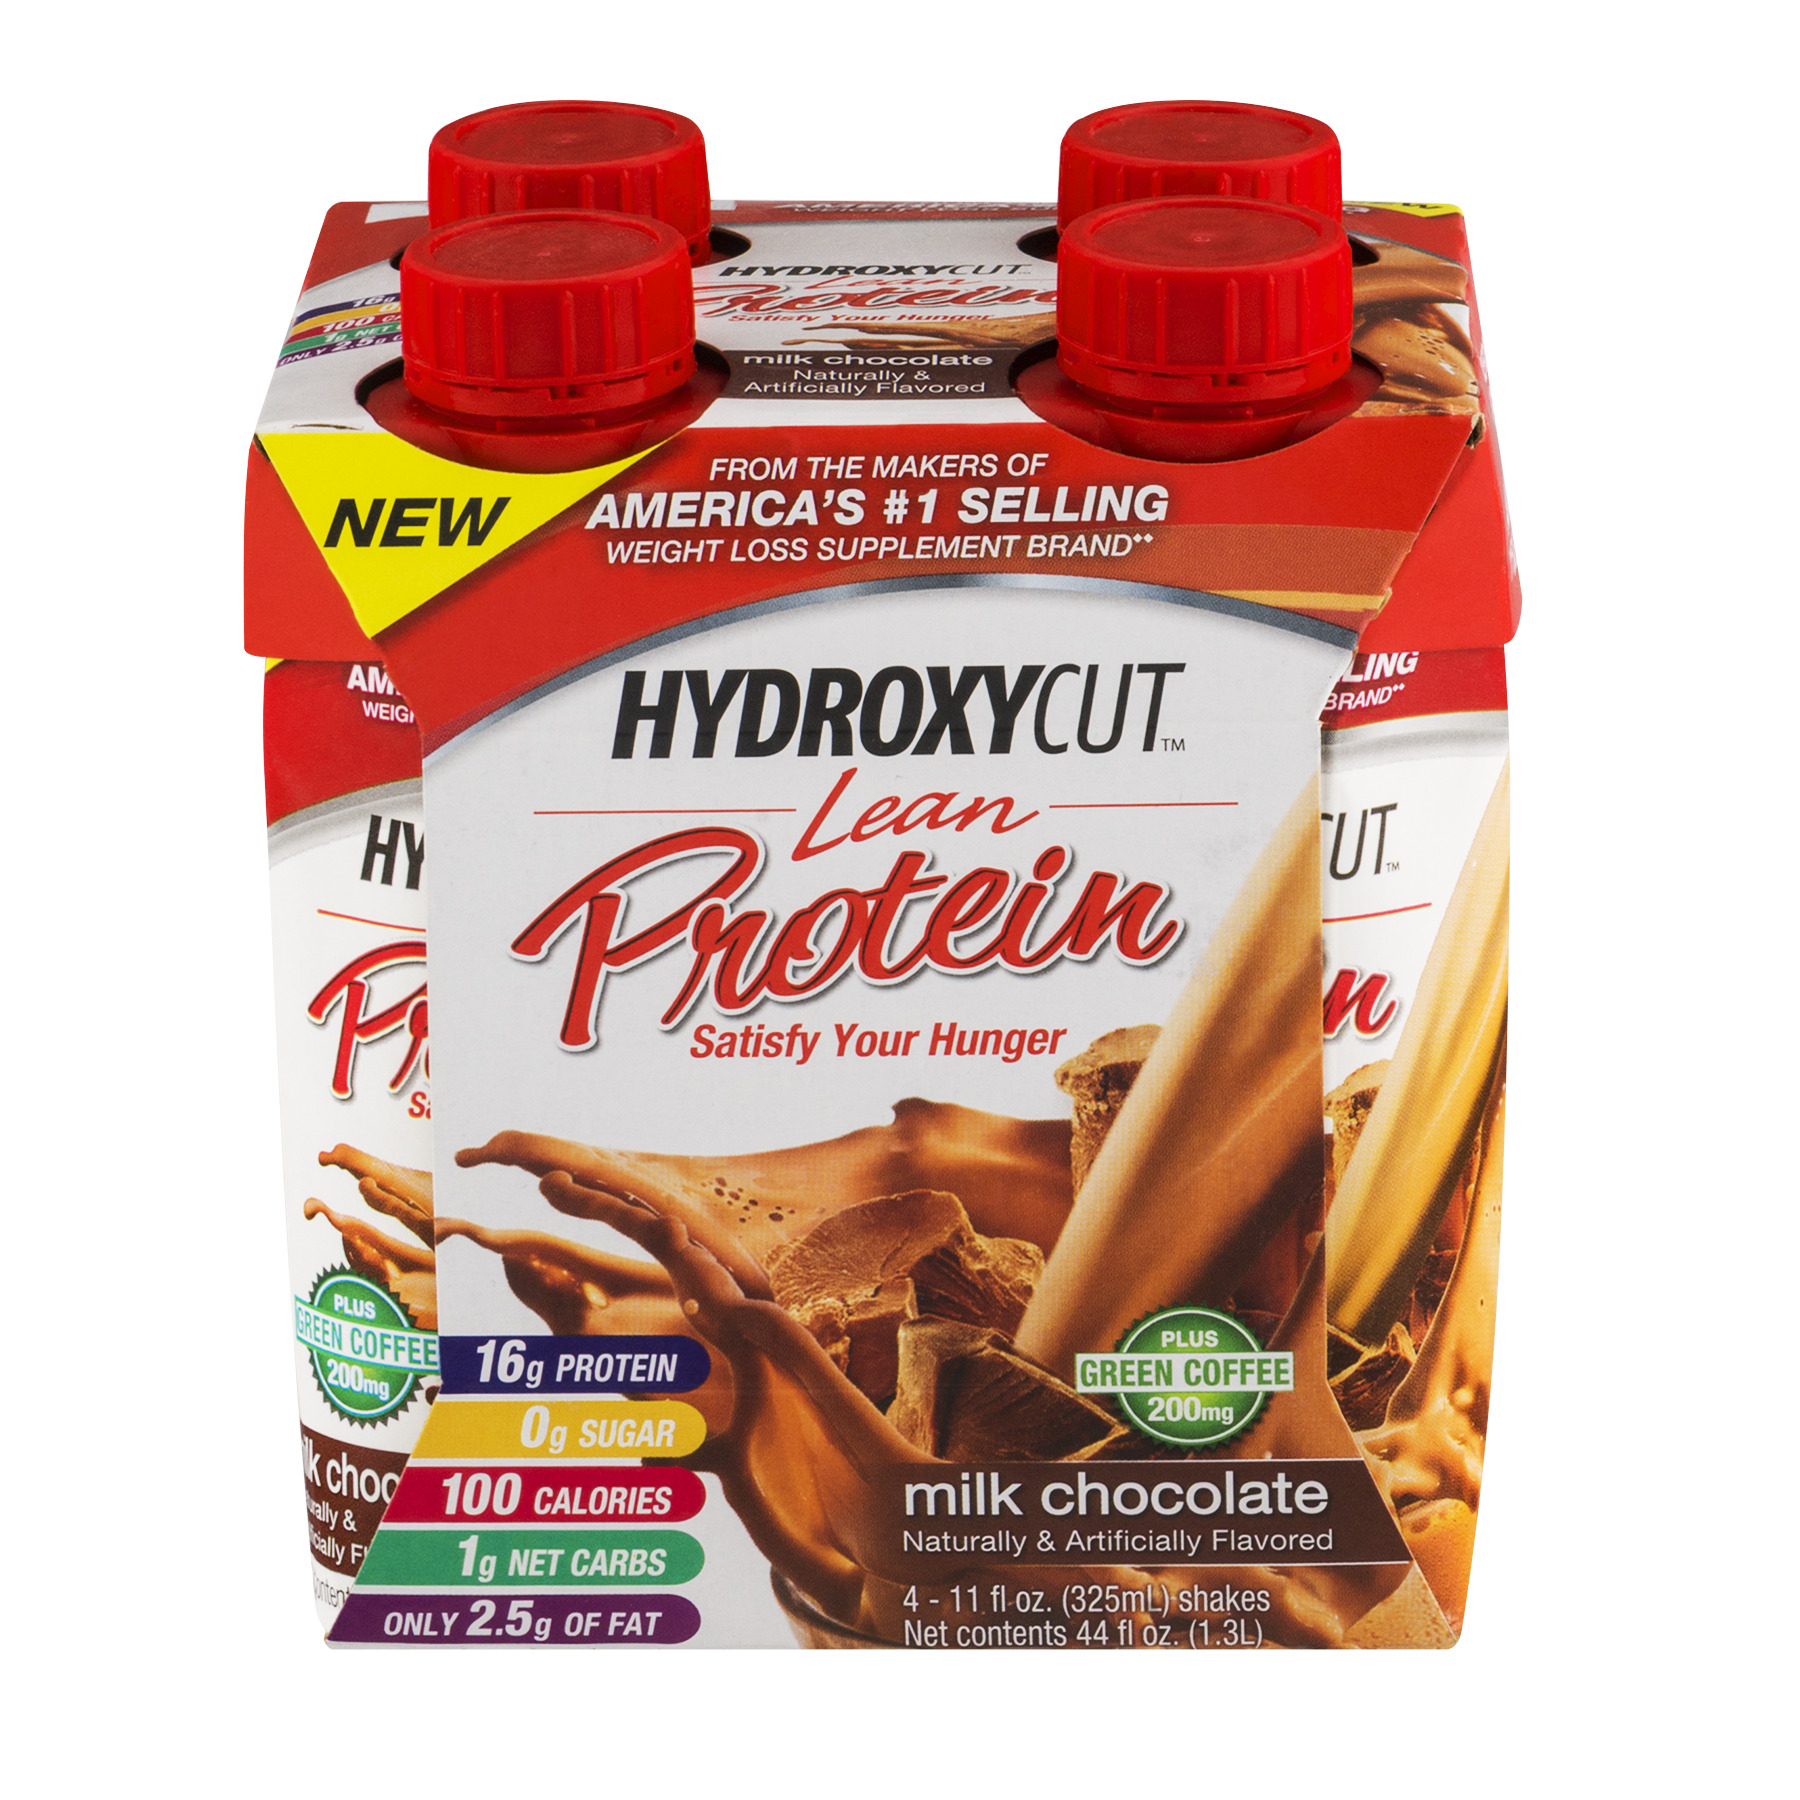 Hydroxycut Lean Shake, 16 Grams of Protein, Milk Chocolate, 11 Oz, 4 Ct